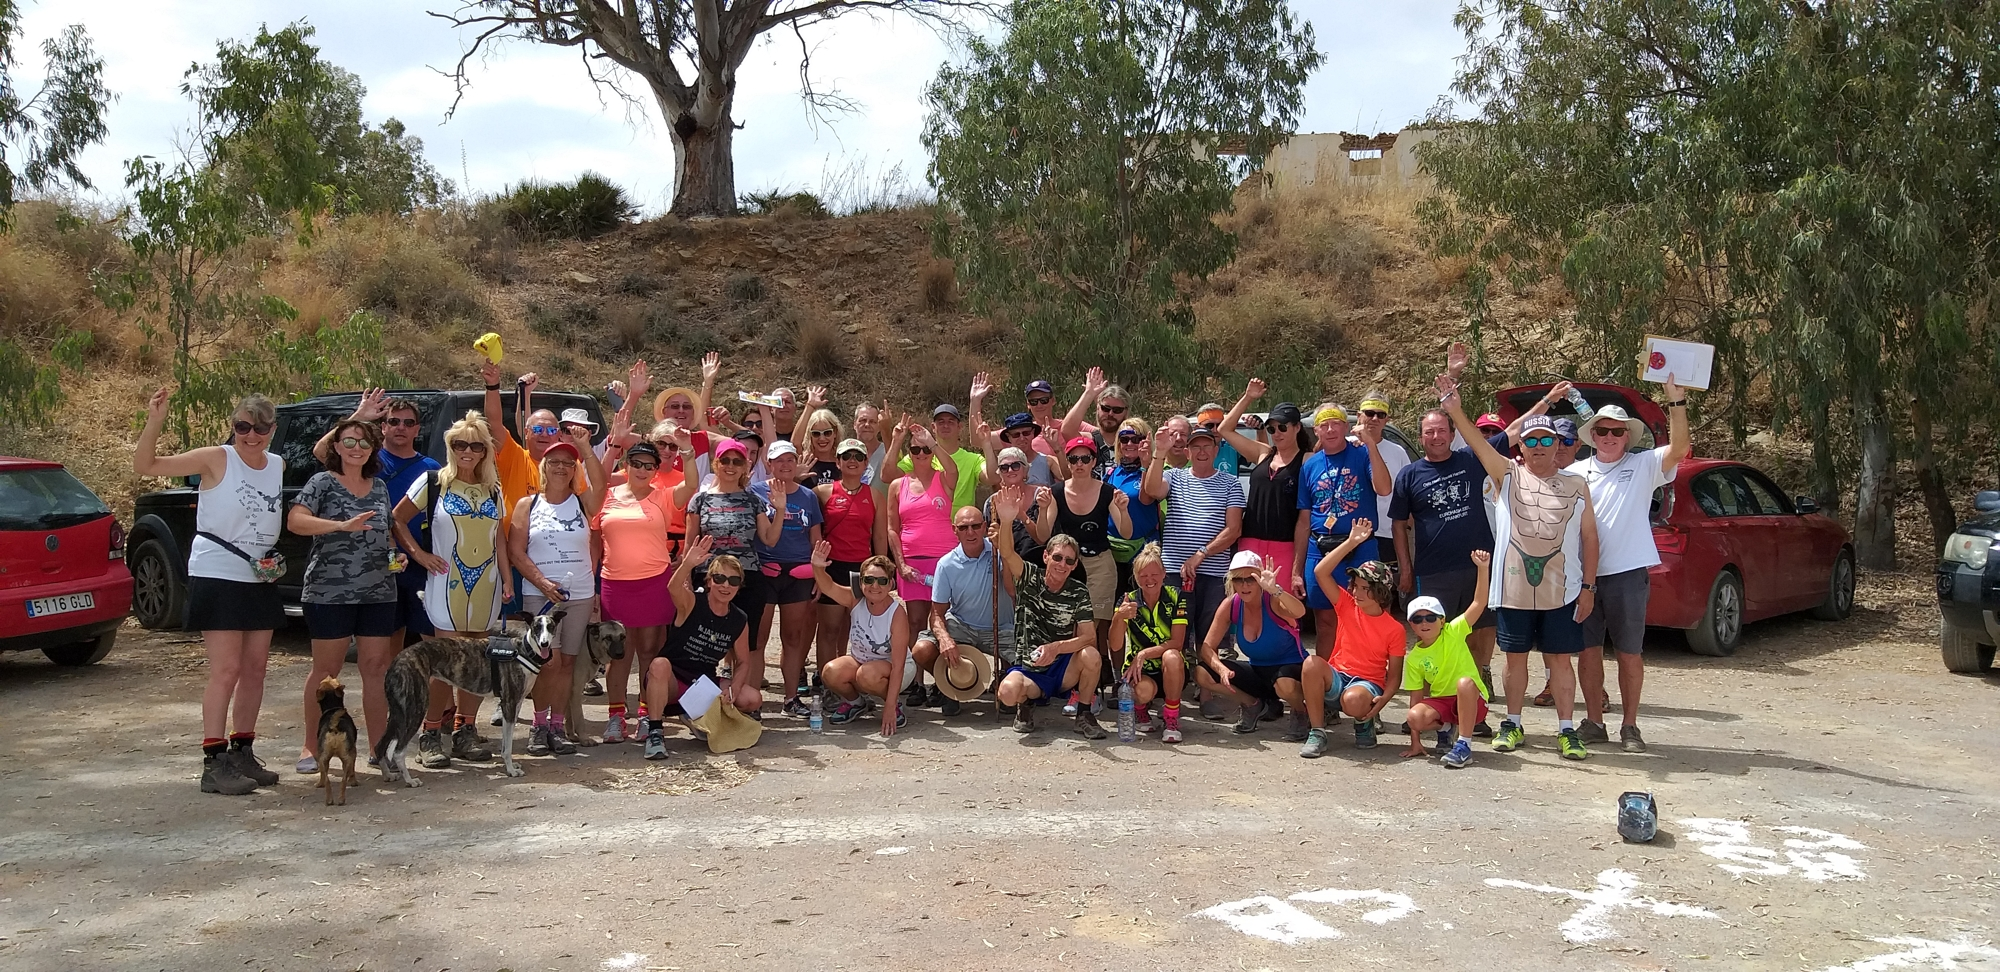 Mijas H3 - Hash Flash Golden Cascade - Run 1647  - 07 Jul 2019 - Photo 4 Pano.jpg